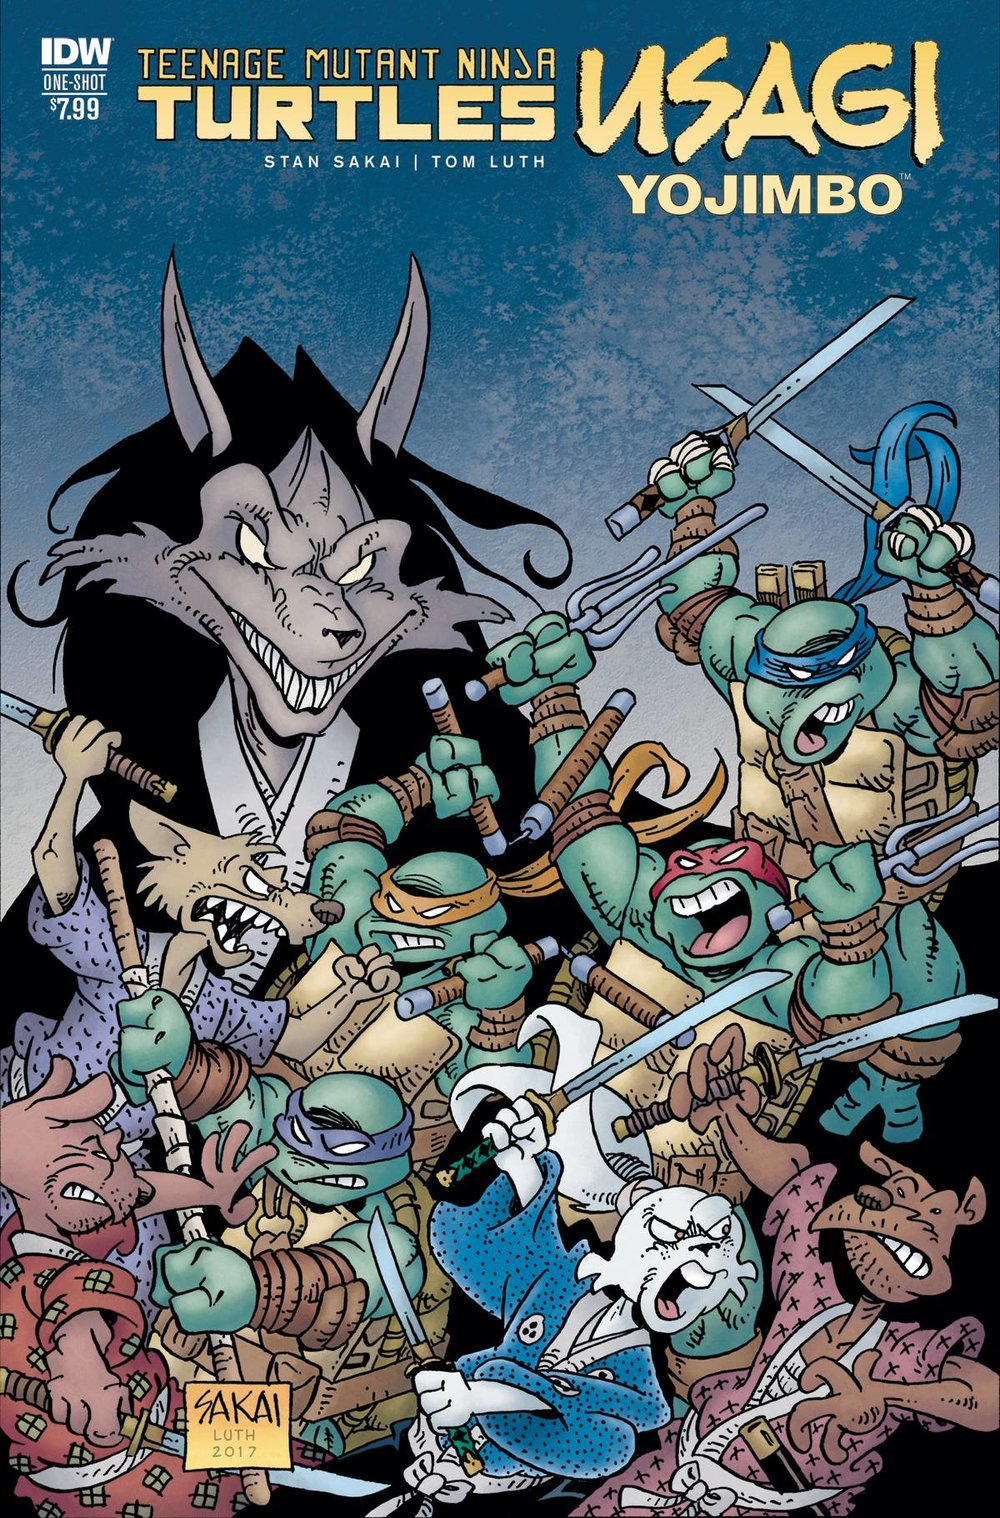 TMNT USAGI YOJIMBO - IDW PUBLISHINGWritten and illustrated by Stan SakaiThe TMNT are teleported to a world of talking animals-the world of Usagi Yojimbo! When the samarai rabbit embarks on a quest to save Japan and the deadly Jei blocks his path, a Turtle team-up may be the only chance for survival!